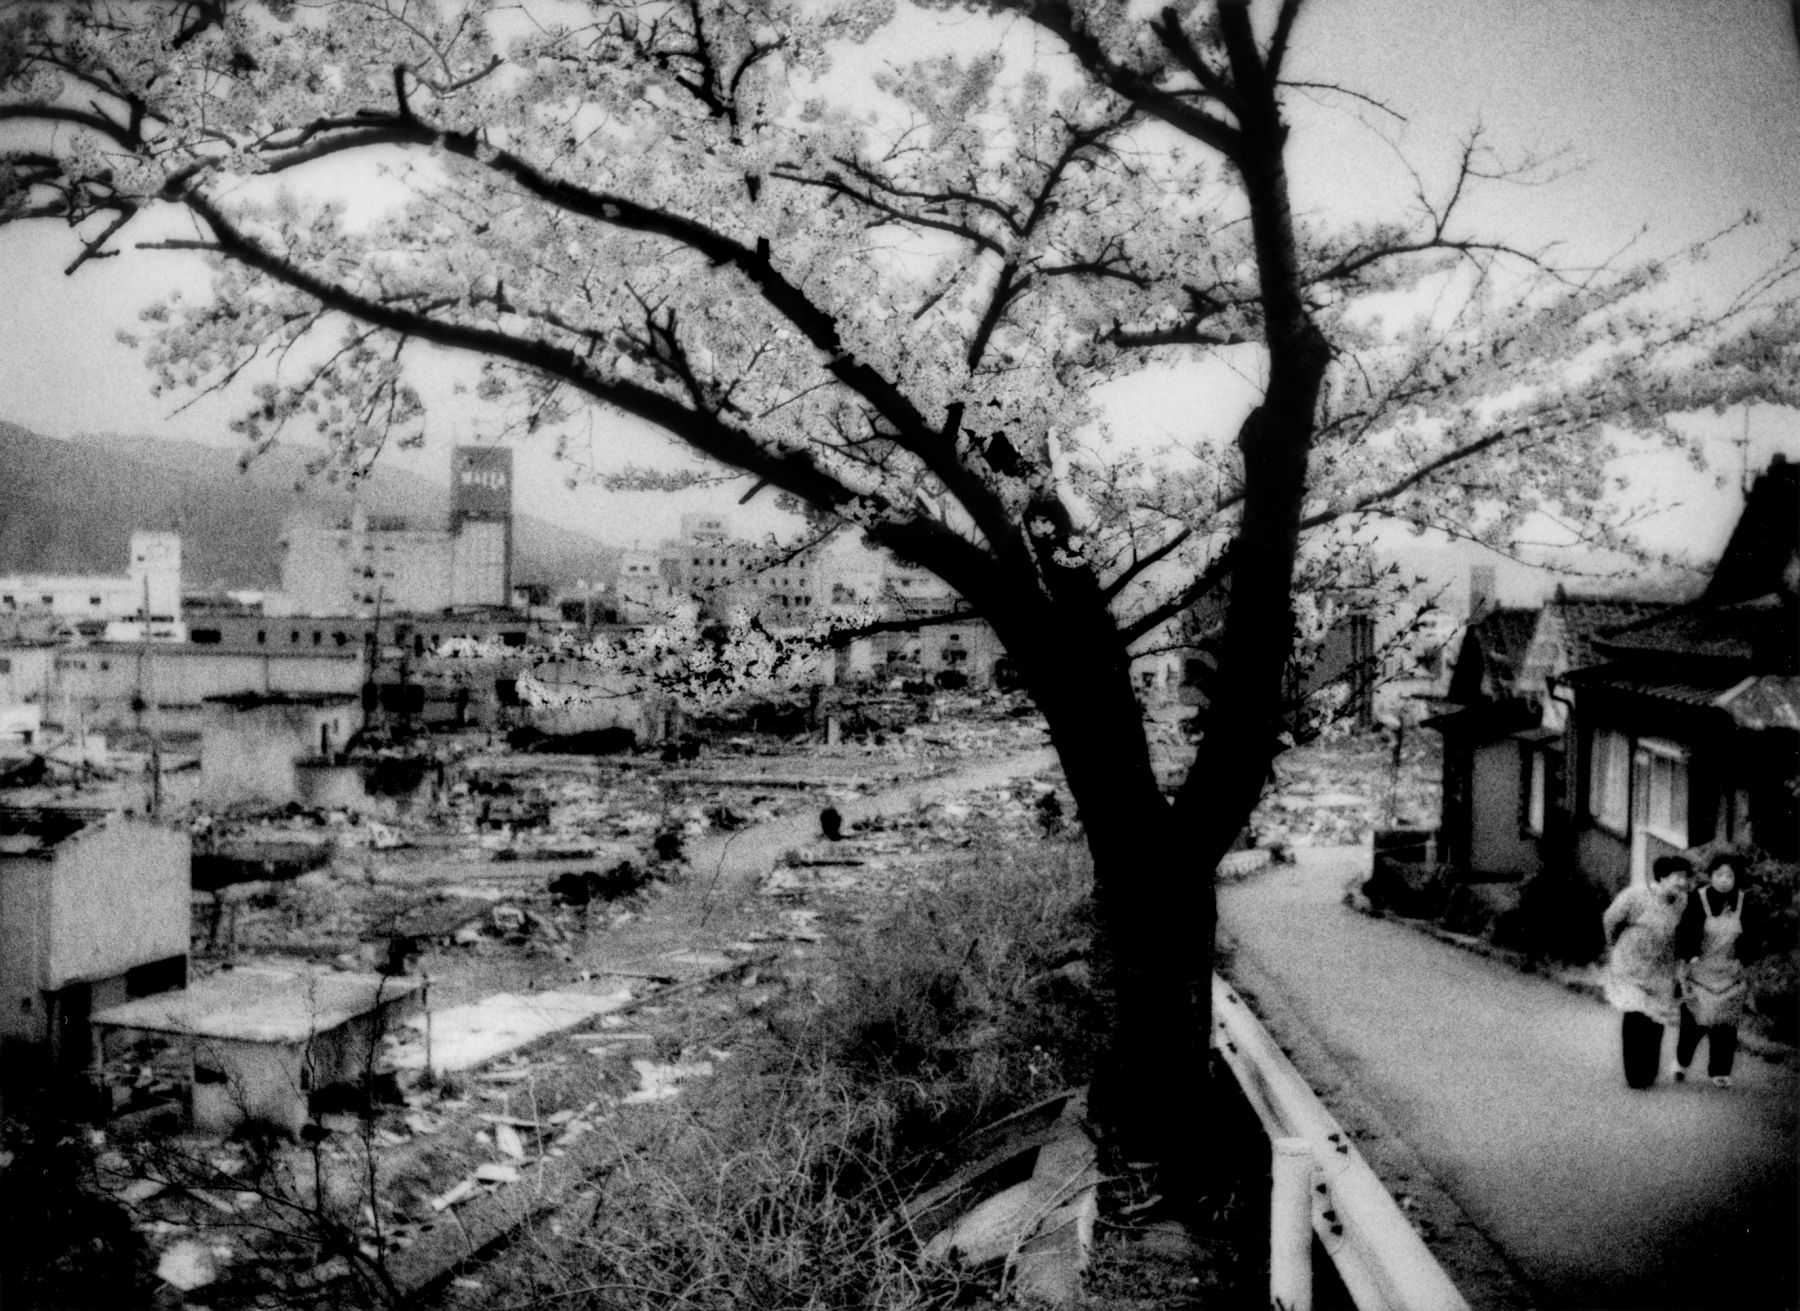 James Whitlow Delano, Black Tsunami, Sakura (cherry blossoms) bloom and older women climb a hill that provided sanctuary from the mightly tsunami, Ofunato, Iwate Prefecture, Japan, 2011, Sous Les Etoiles Gallery